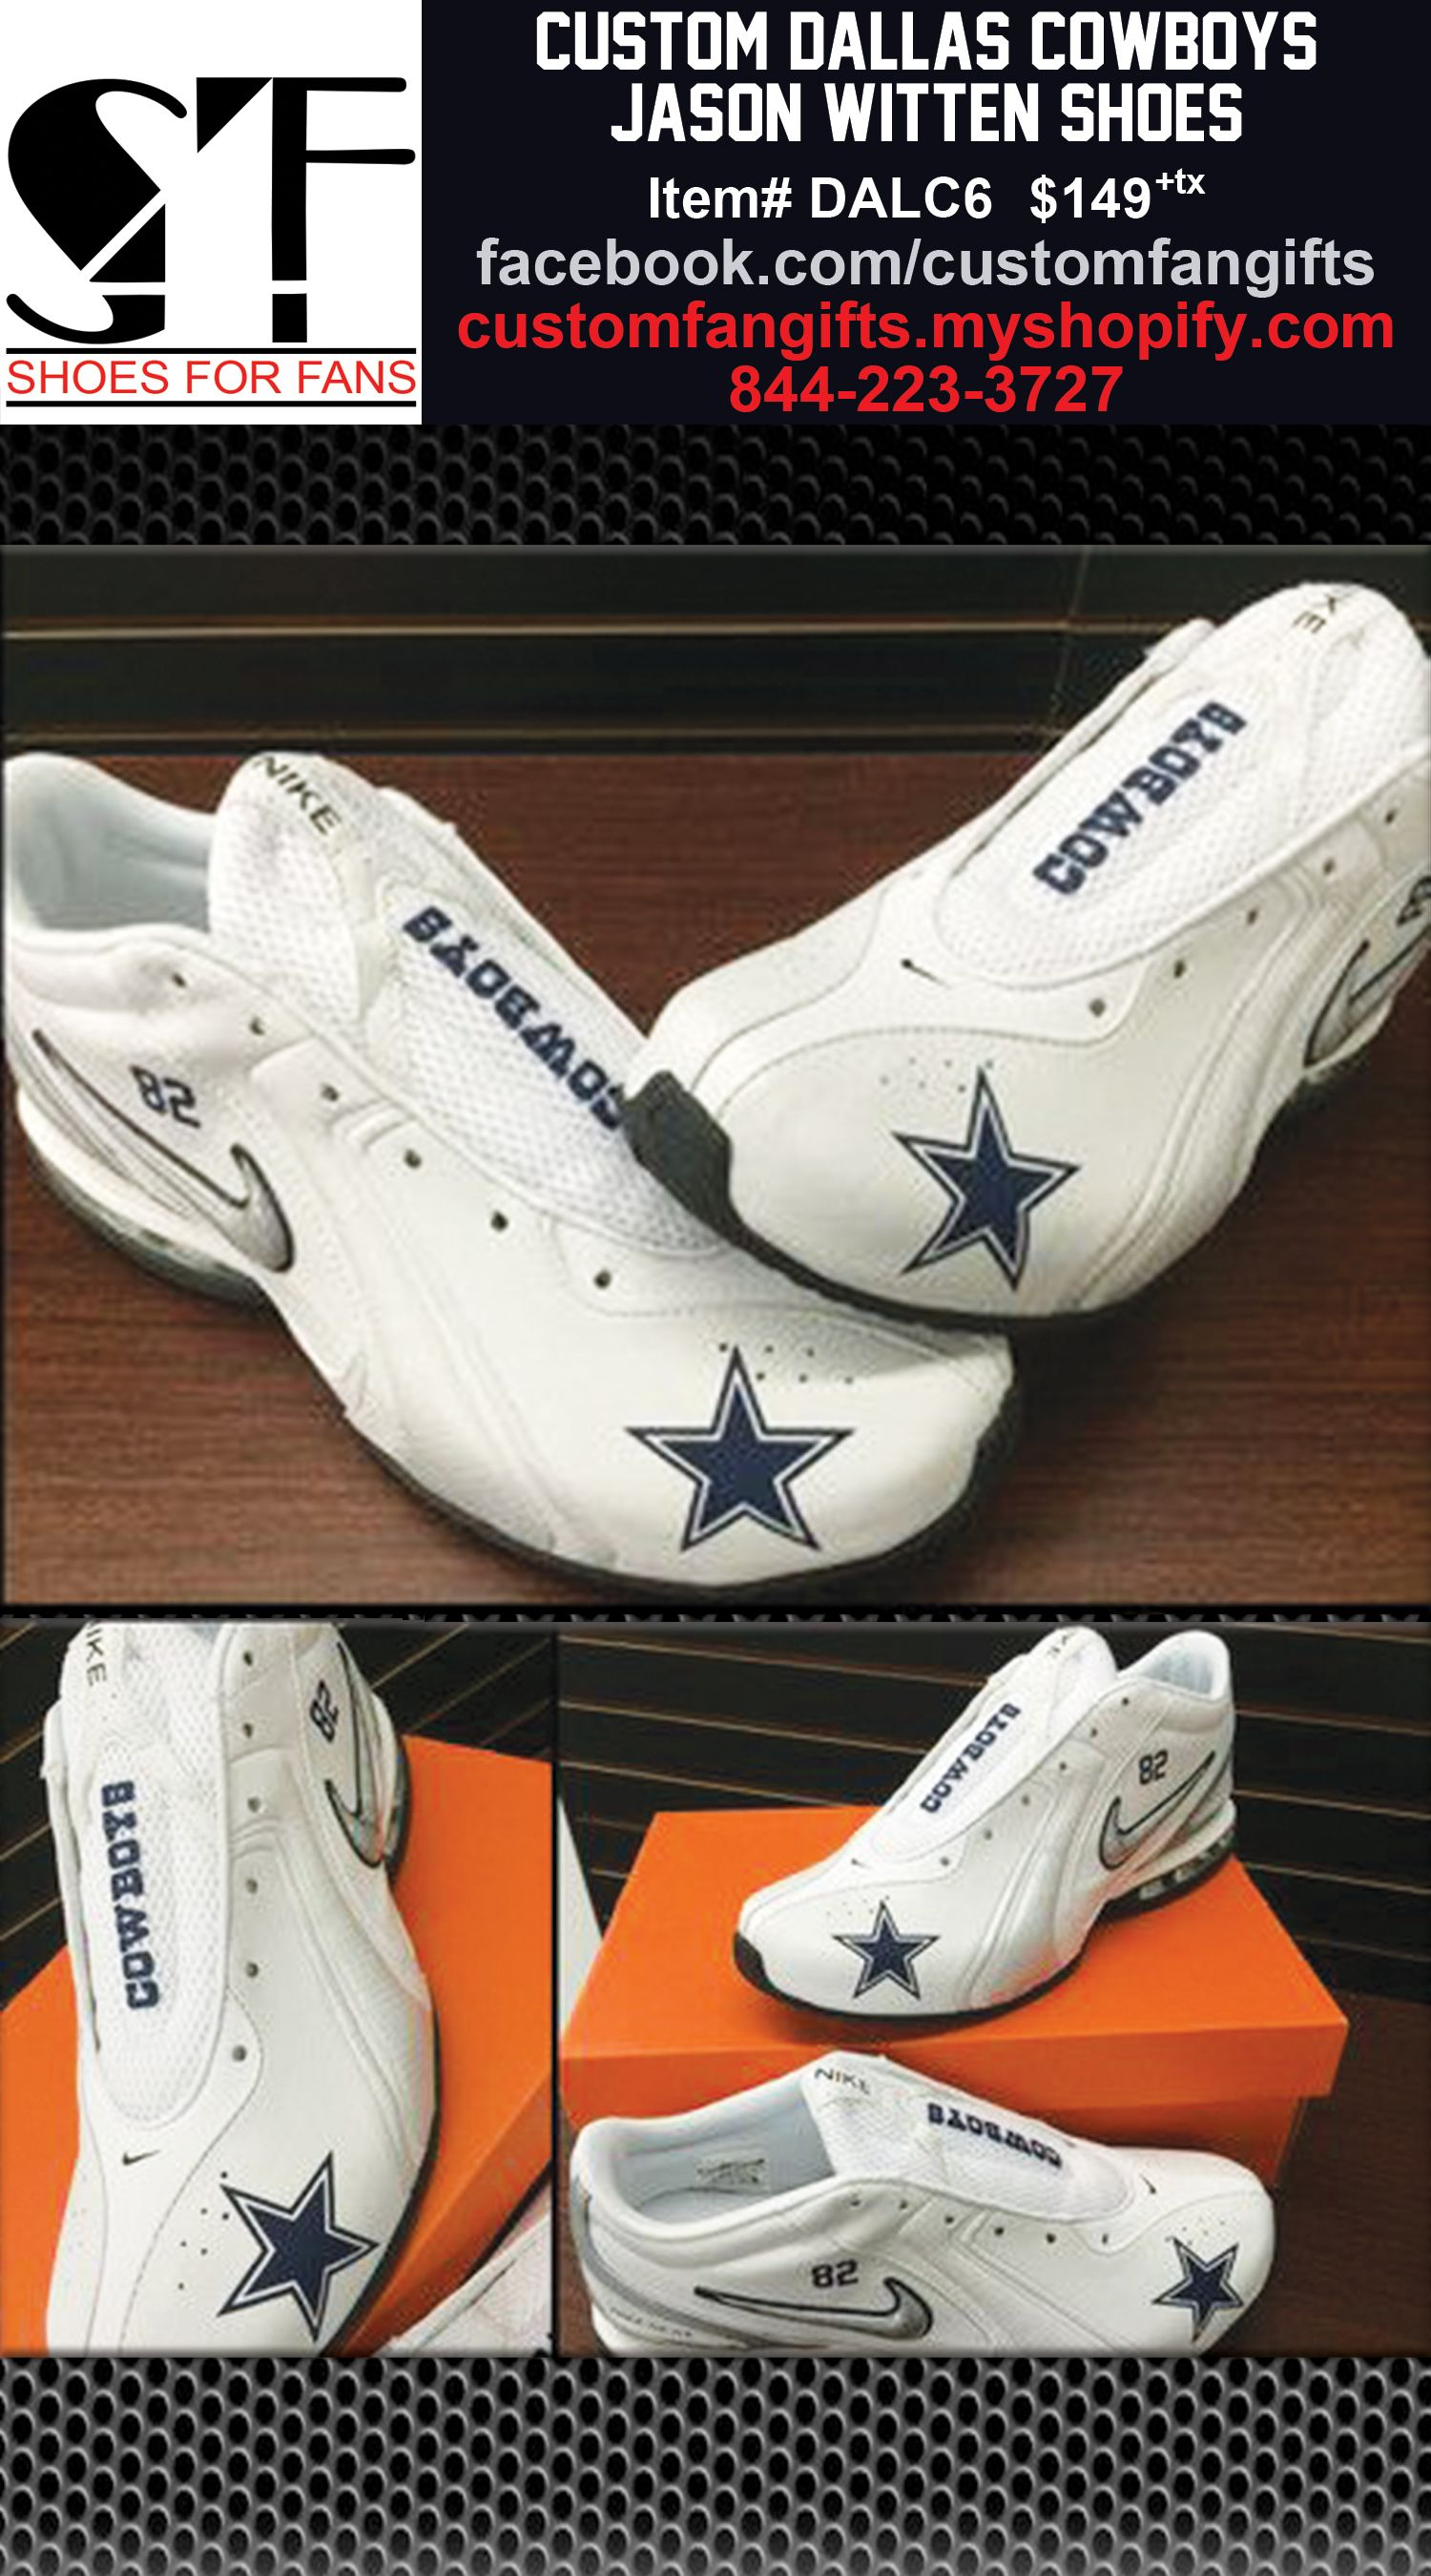 Custom Dallas Cowboys Jason Witten Nike Shoes! Order at shop.gifts4fans.com